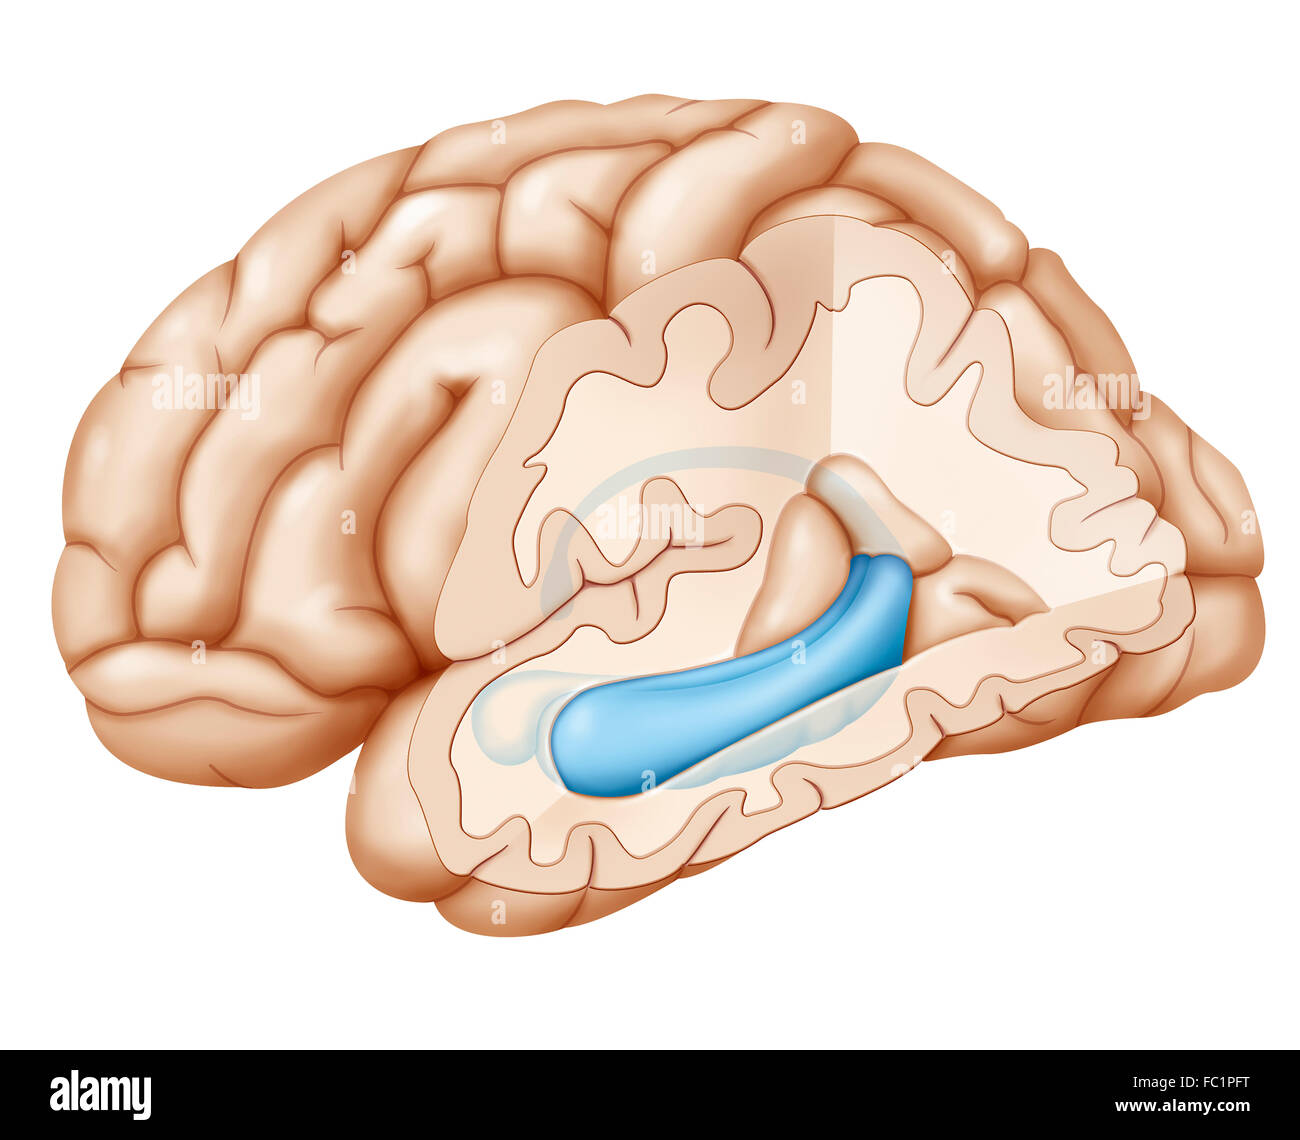 Hippocampus brain drawing stock photos hippocampus brain drawing brain drawing stock image ccuart Gallery